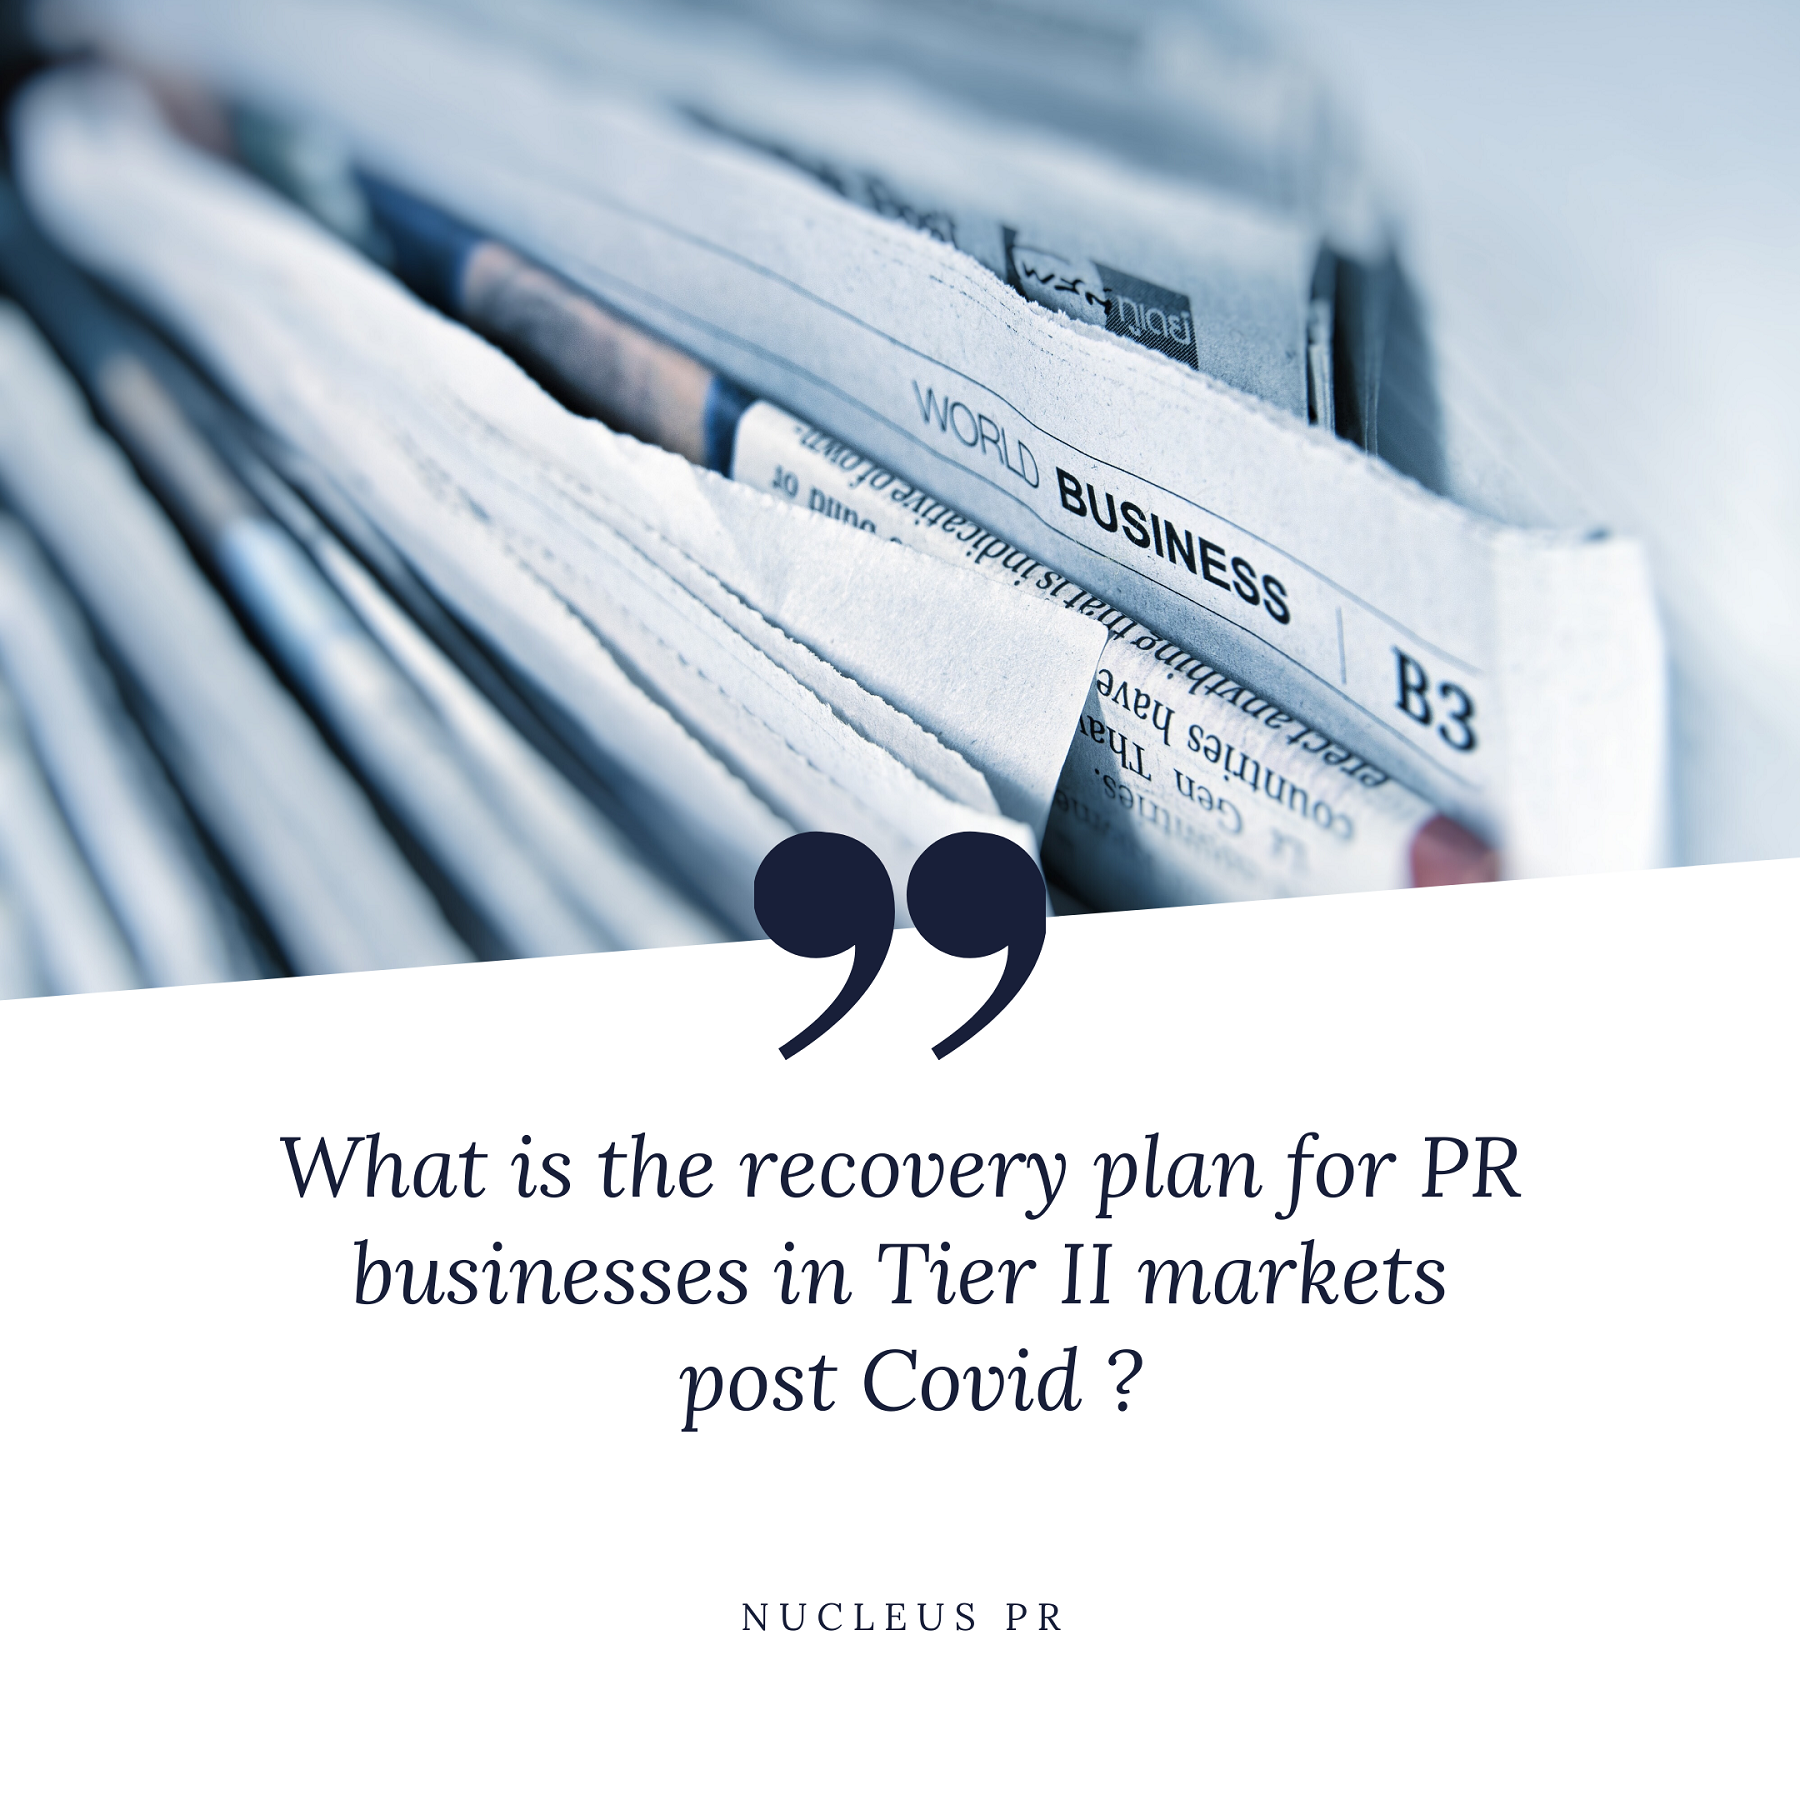 How is the Tier 2 market handling recovery from the Covid19 Impact?